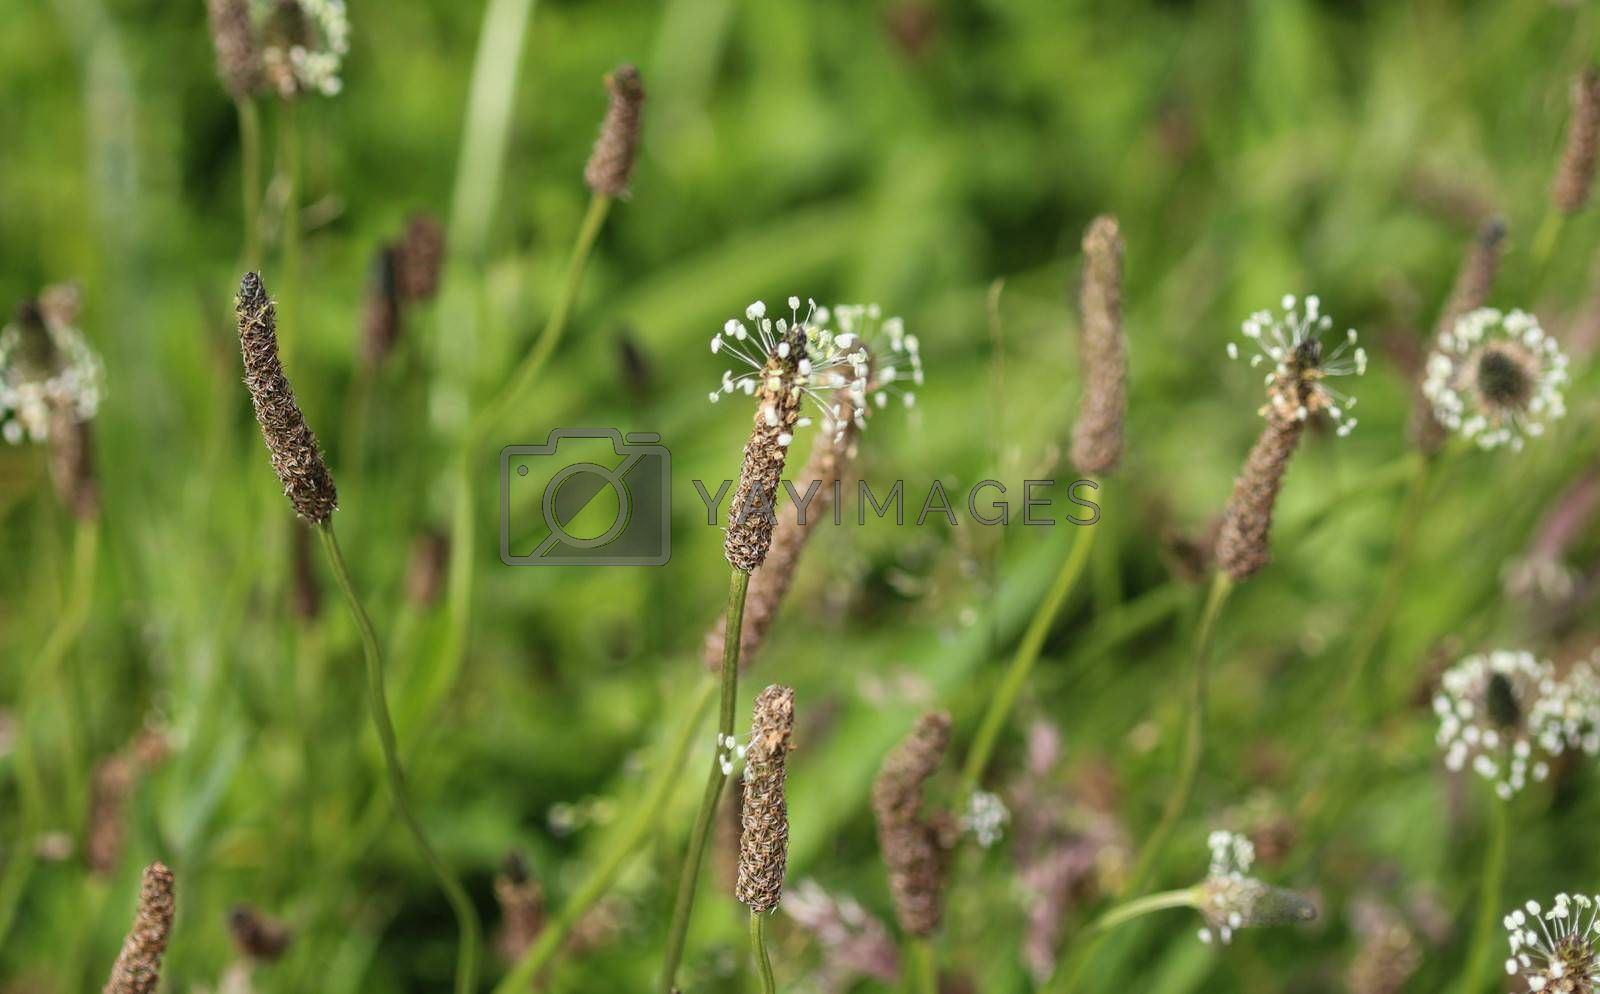 Royalty free image of Plantago lanceolata, It is known by the common names ribwort plantain, narrowleaf plantain, English plantain and ribleaf by michaelmeijer